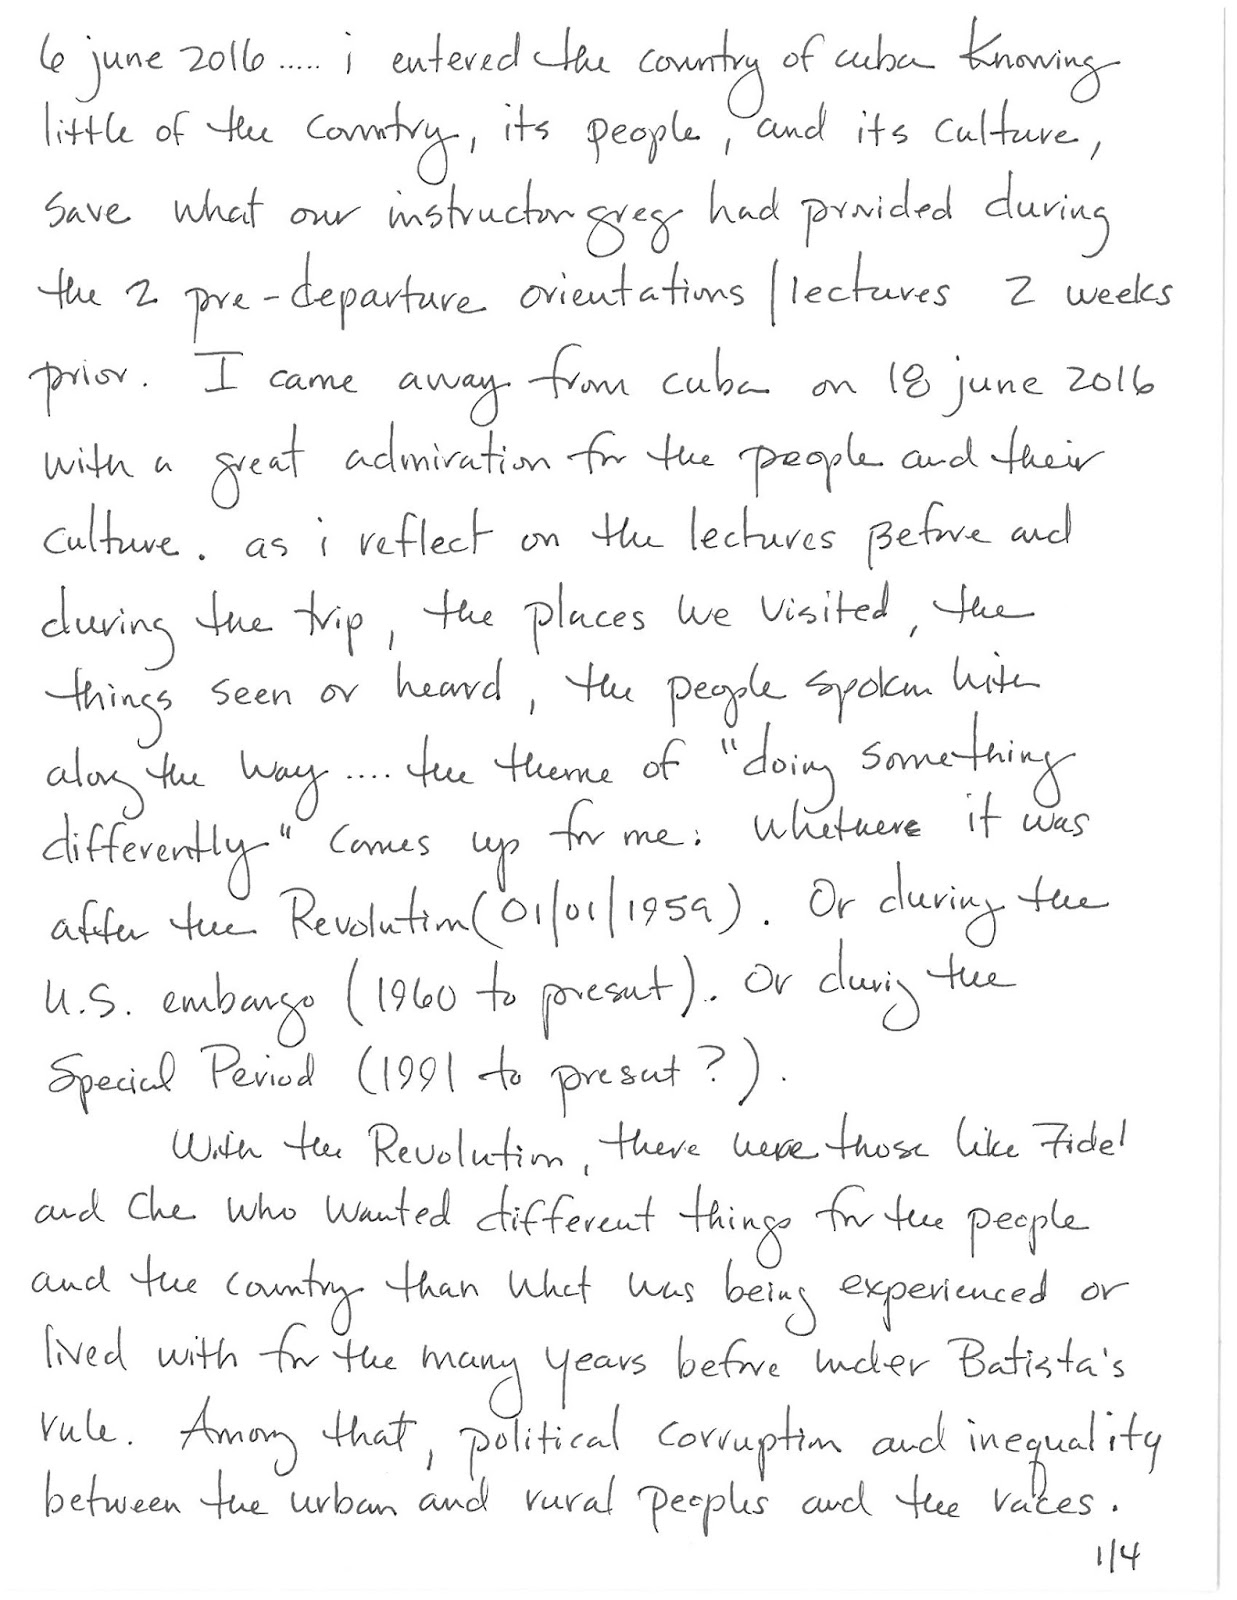 essay on my experience in school life Example entrance essay on significant activity, interest, or experience instructions: discuss an activity, interest, experience, or achievement in your life(this could be a book, movie, or an activity or experience at work, home, or school) that has been particularly meaningful to you.